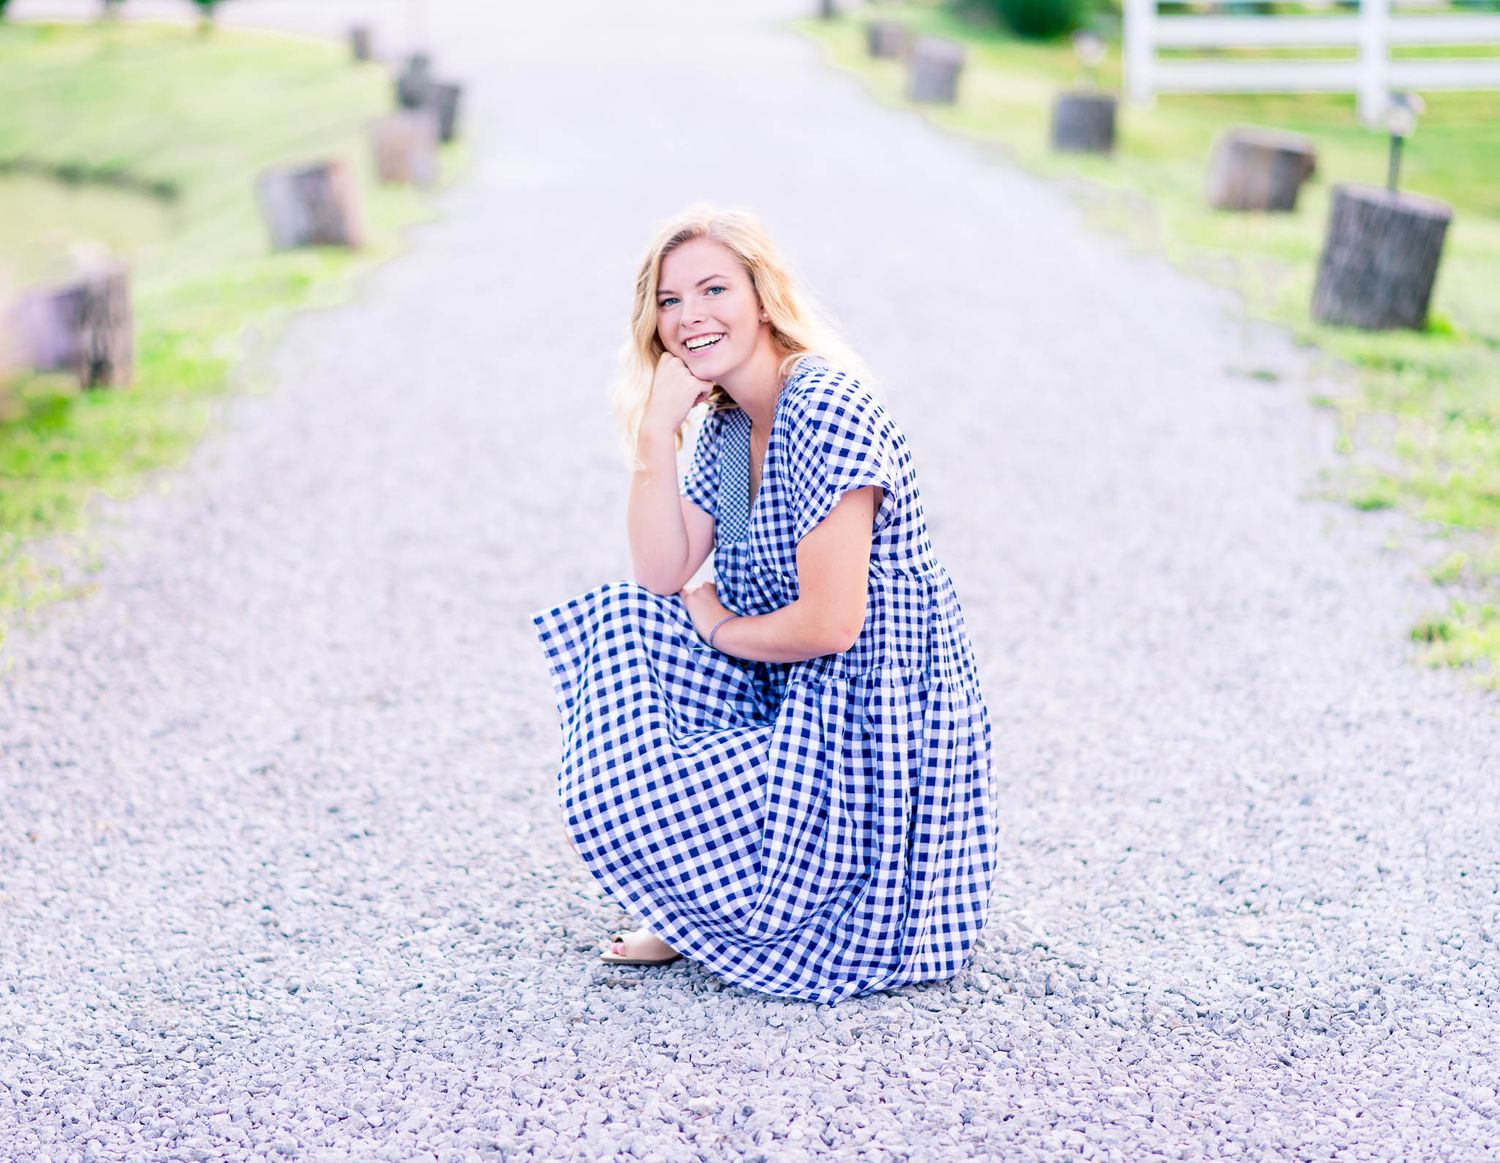 young woman in blue and white dress crouching on gravel path and smiling